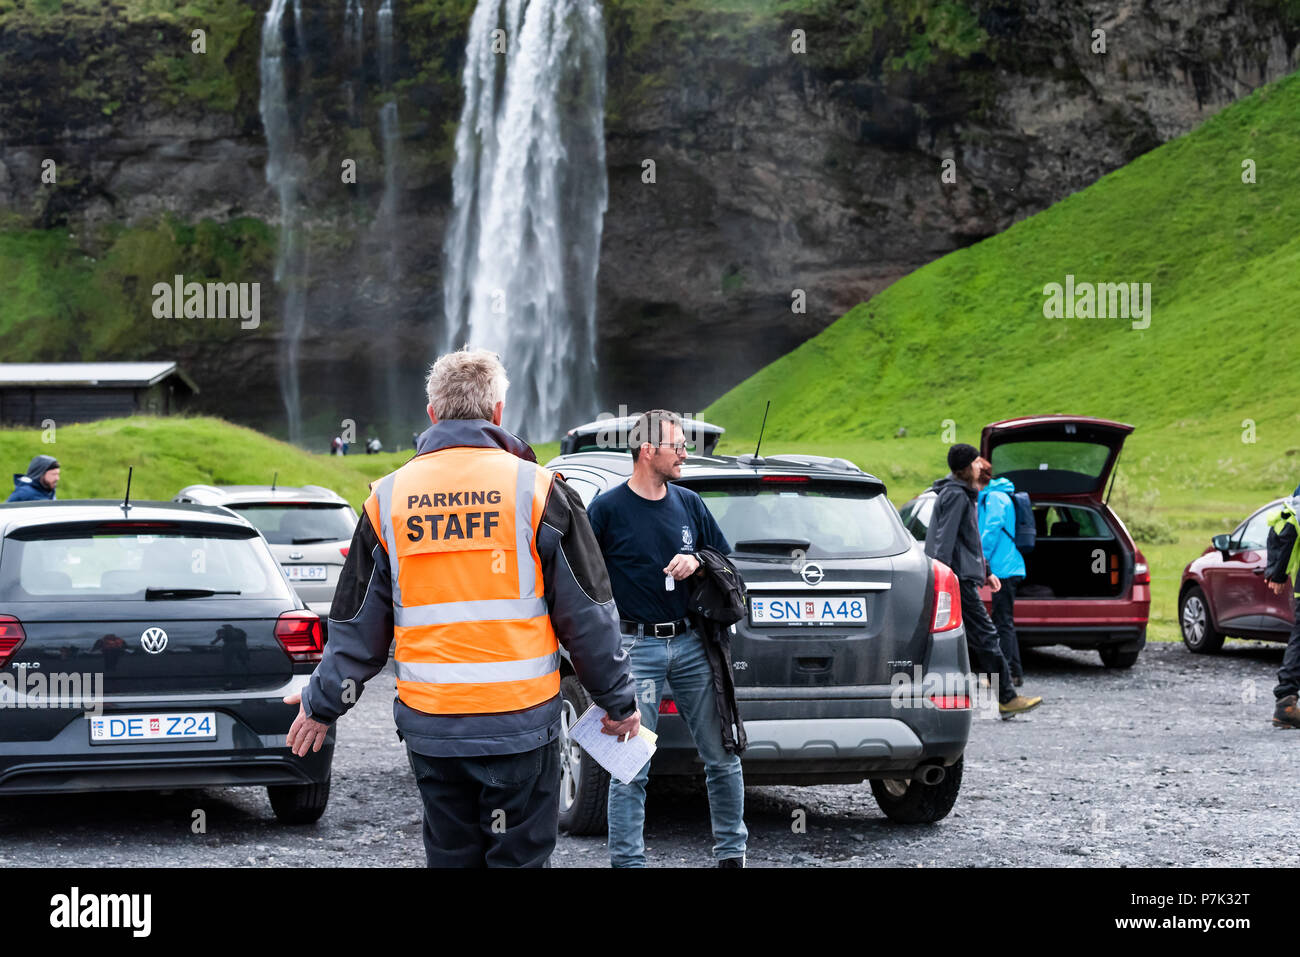 Seljalandsfoss, Iceland - June 14, 2018: Parking lot by waterfall with security guard officer writing tickets in orange vest, tourists walking, cars - Stock Image